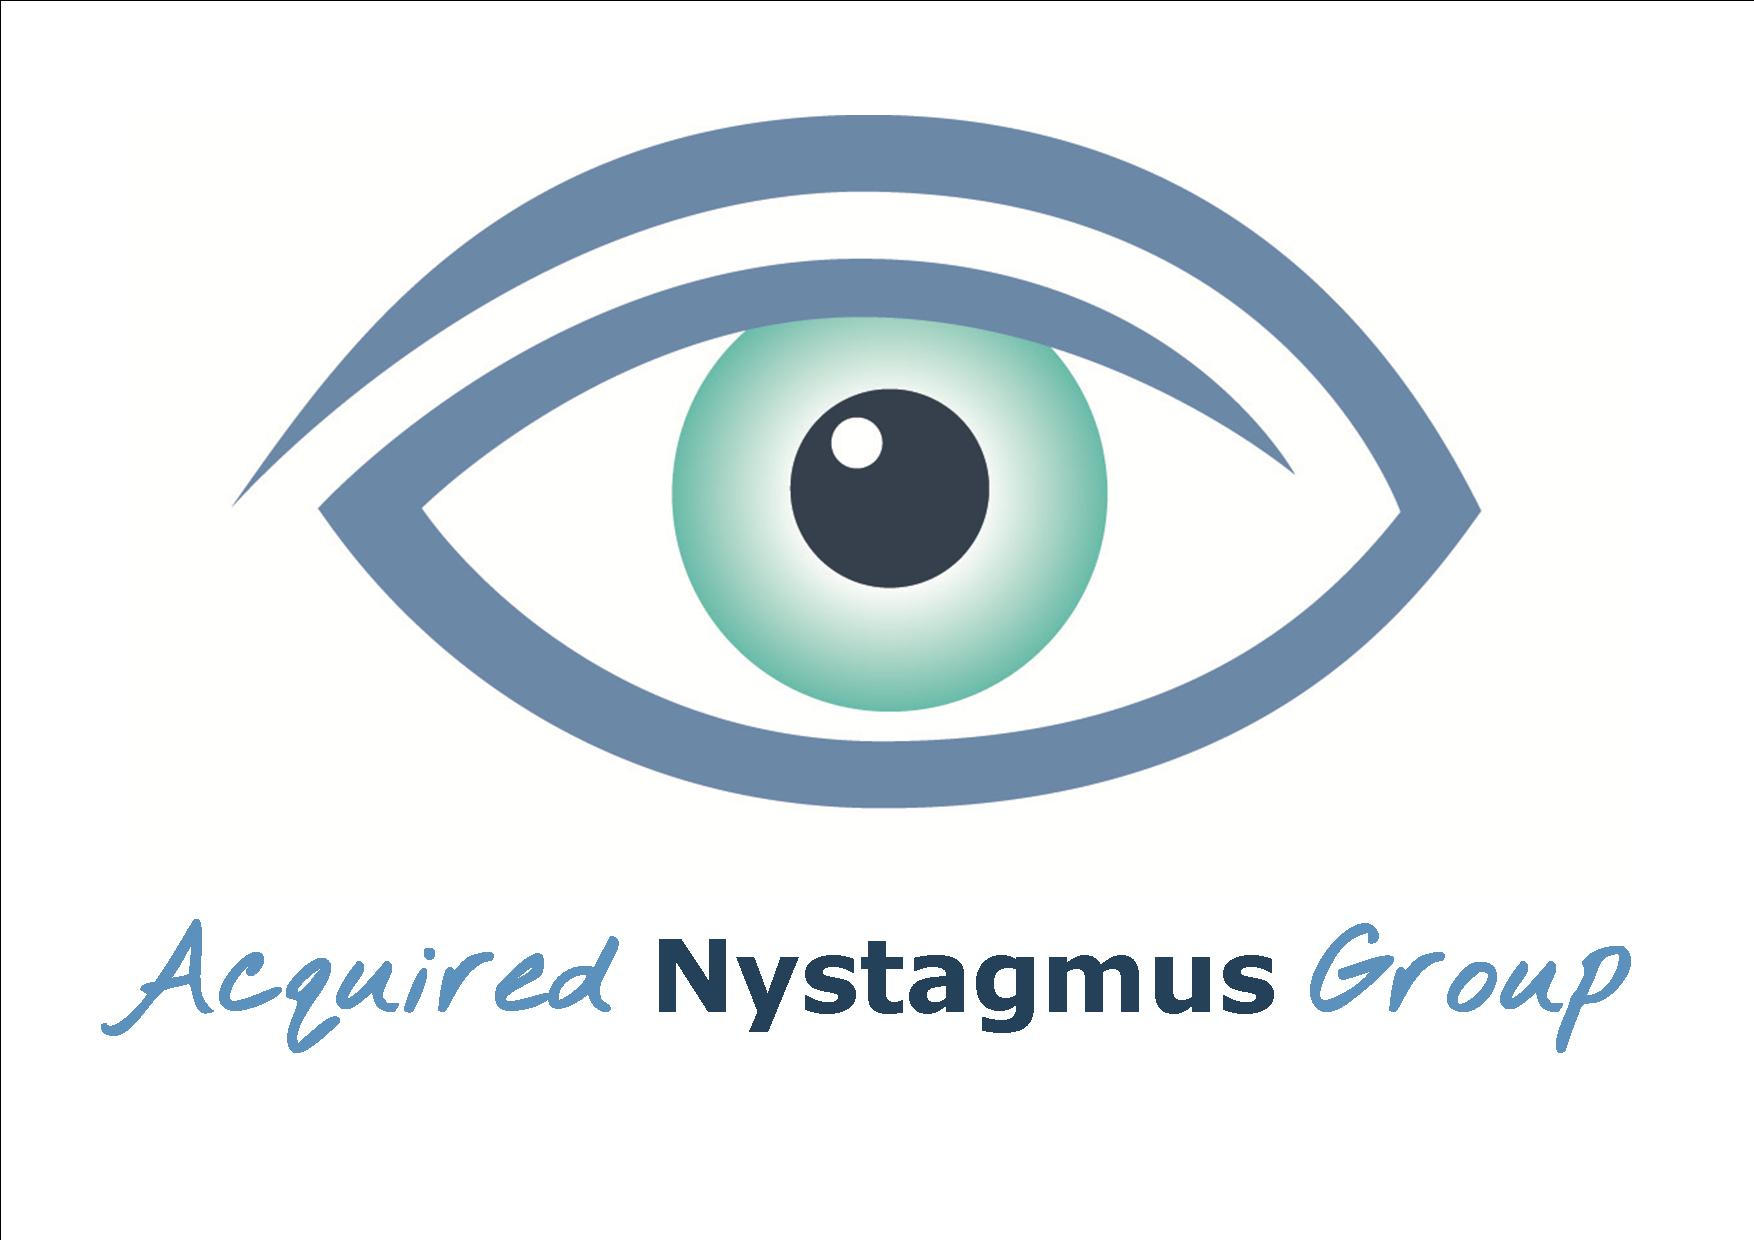 Our new support group for Acquired Nystagmus